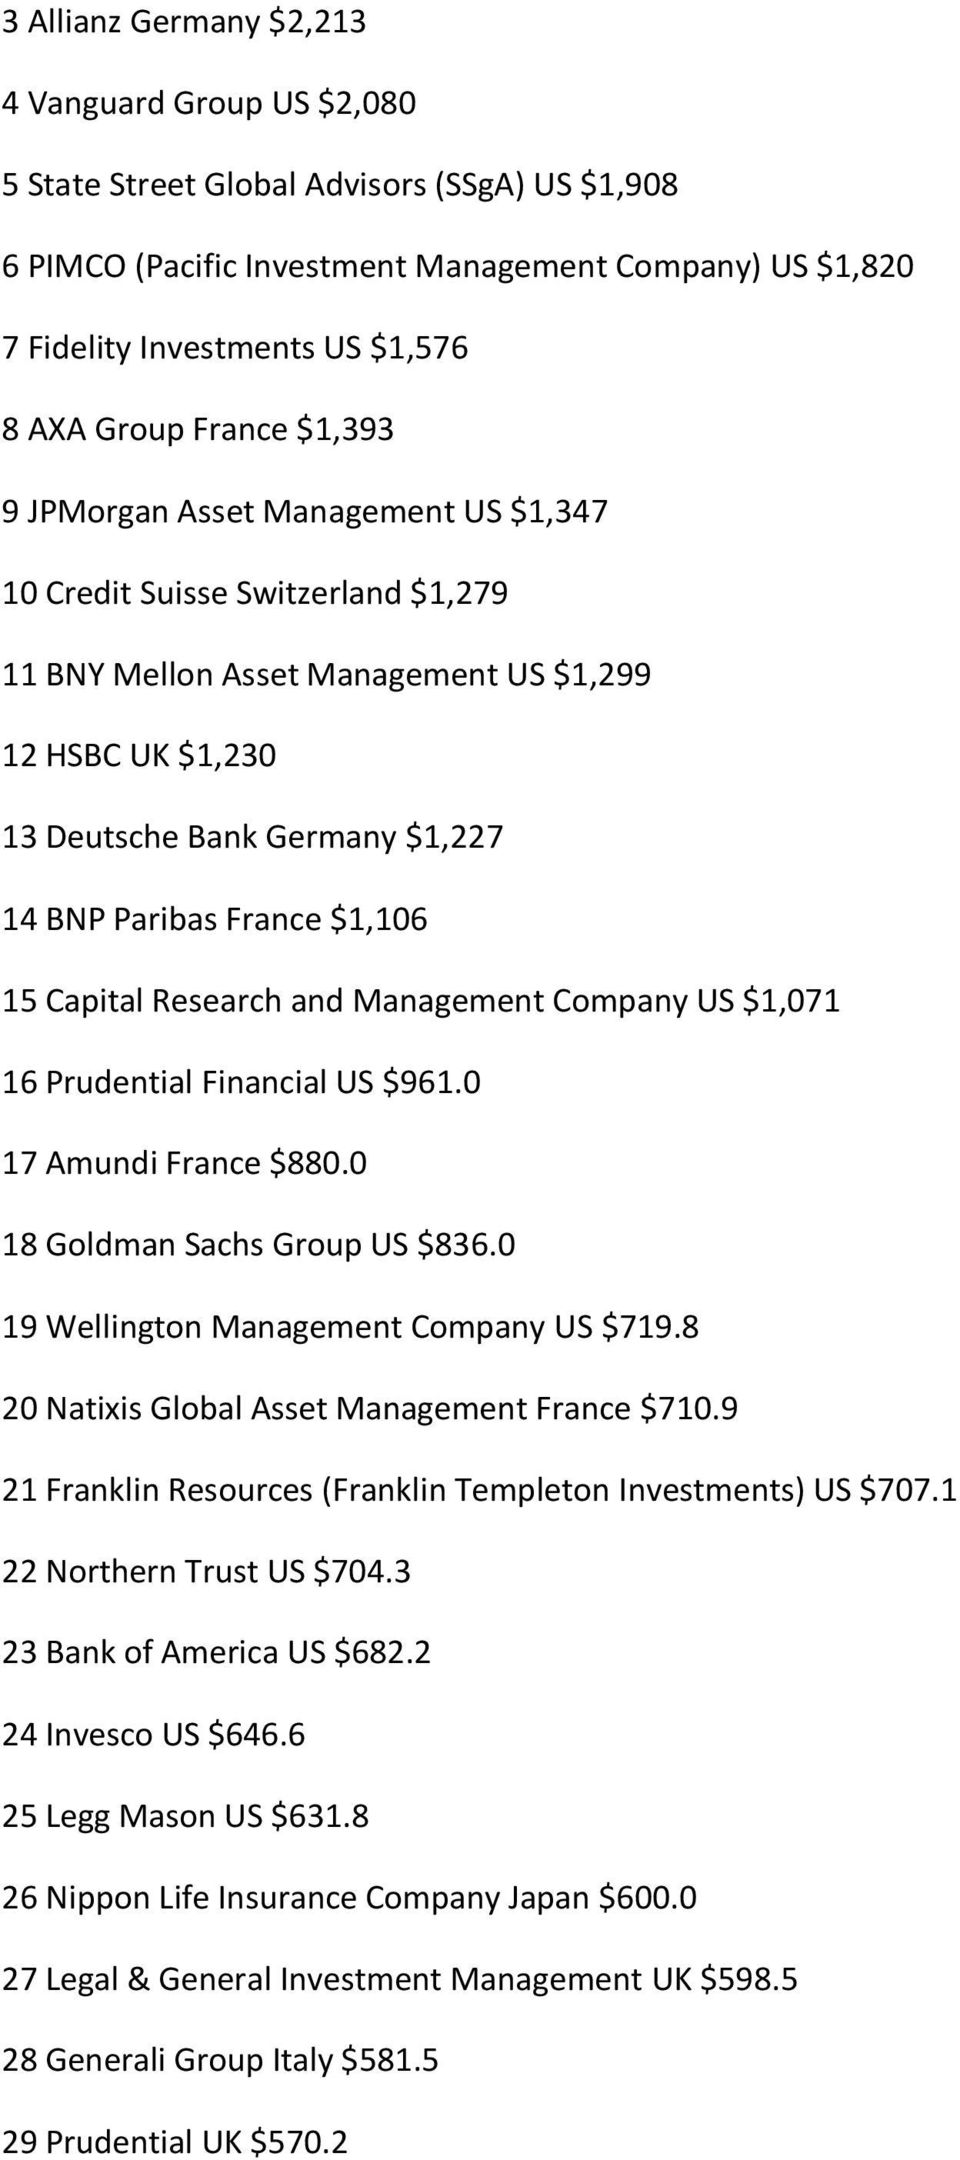 France $1,106 15 Capital Research and Management Company US $1,071 16 Prudential Financial US $961.0 17 Amundi France $880.0 18 Goldman Sachs Group US $836.0 19 Wellington Management Company US $719.